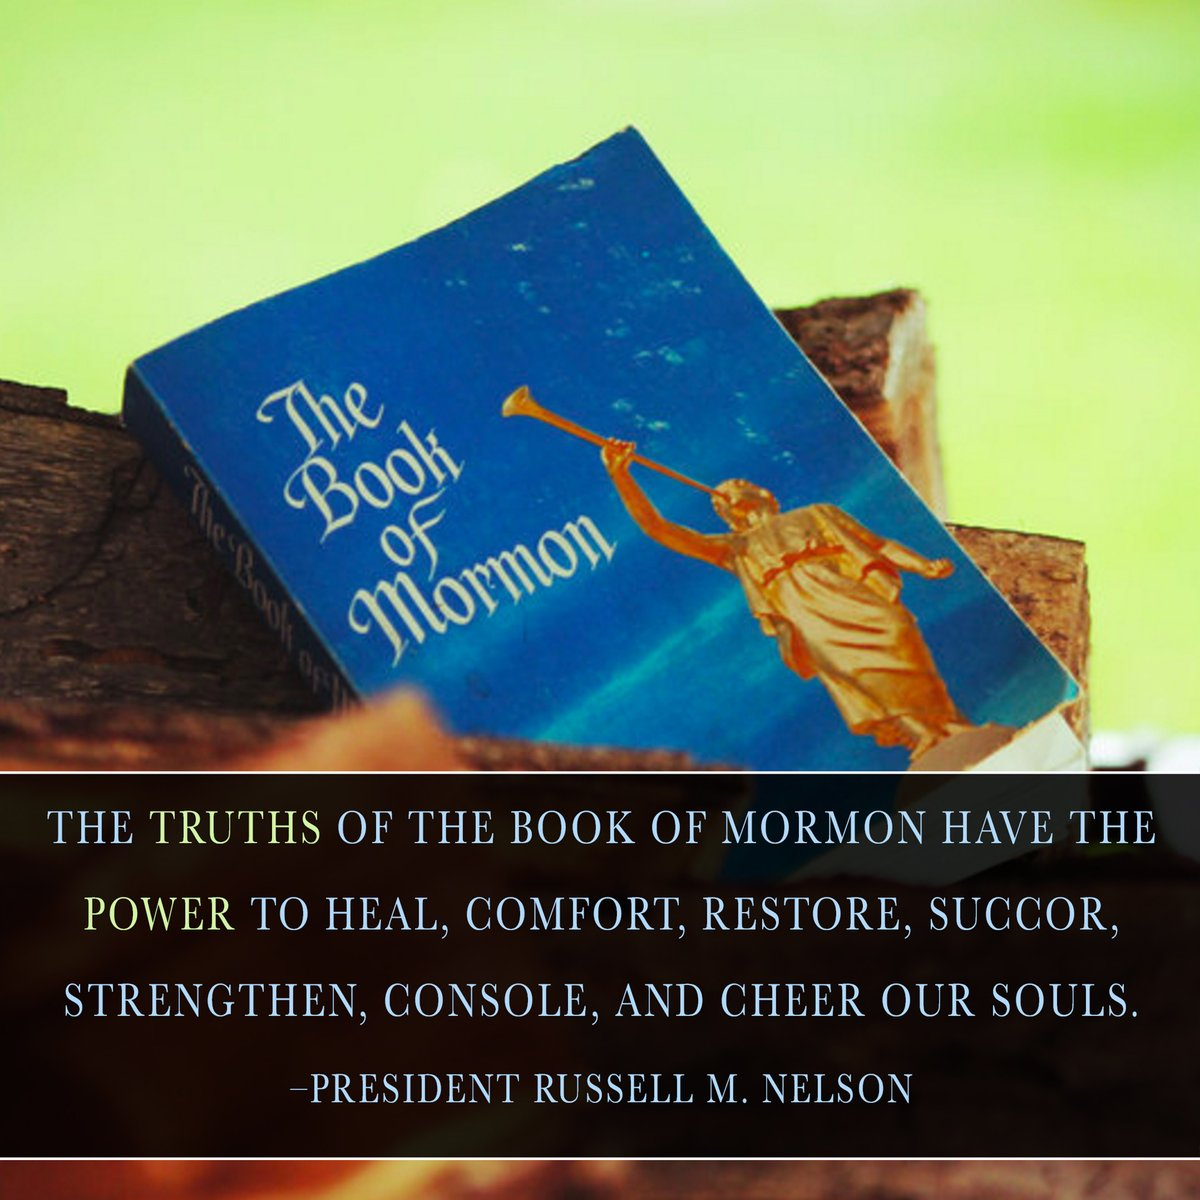 You're Kidding Yourself if You Think Joseph Smith Wrote the Book of Mormon